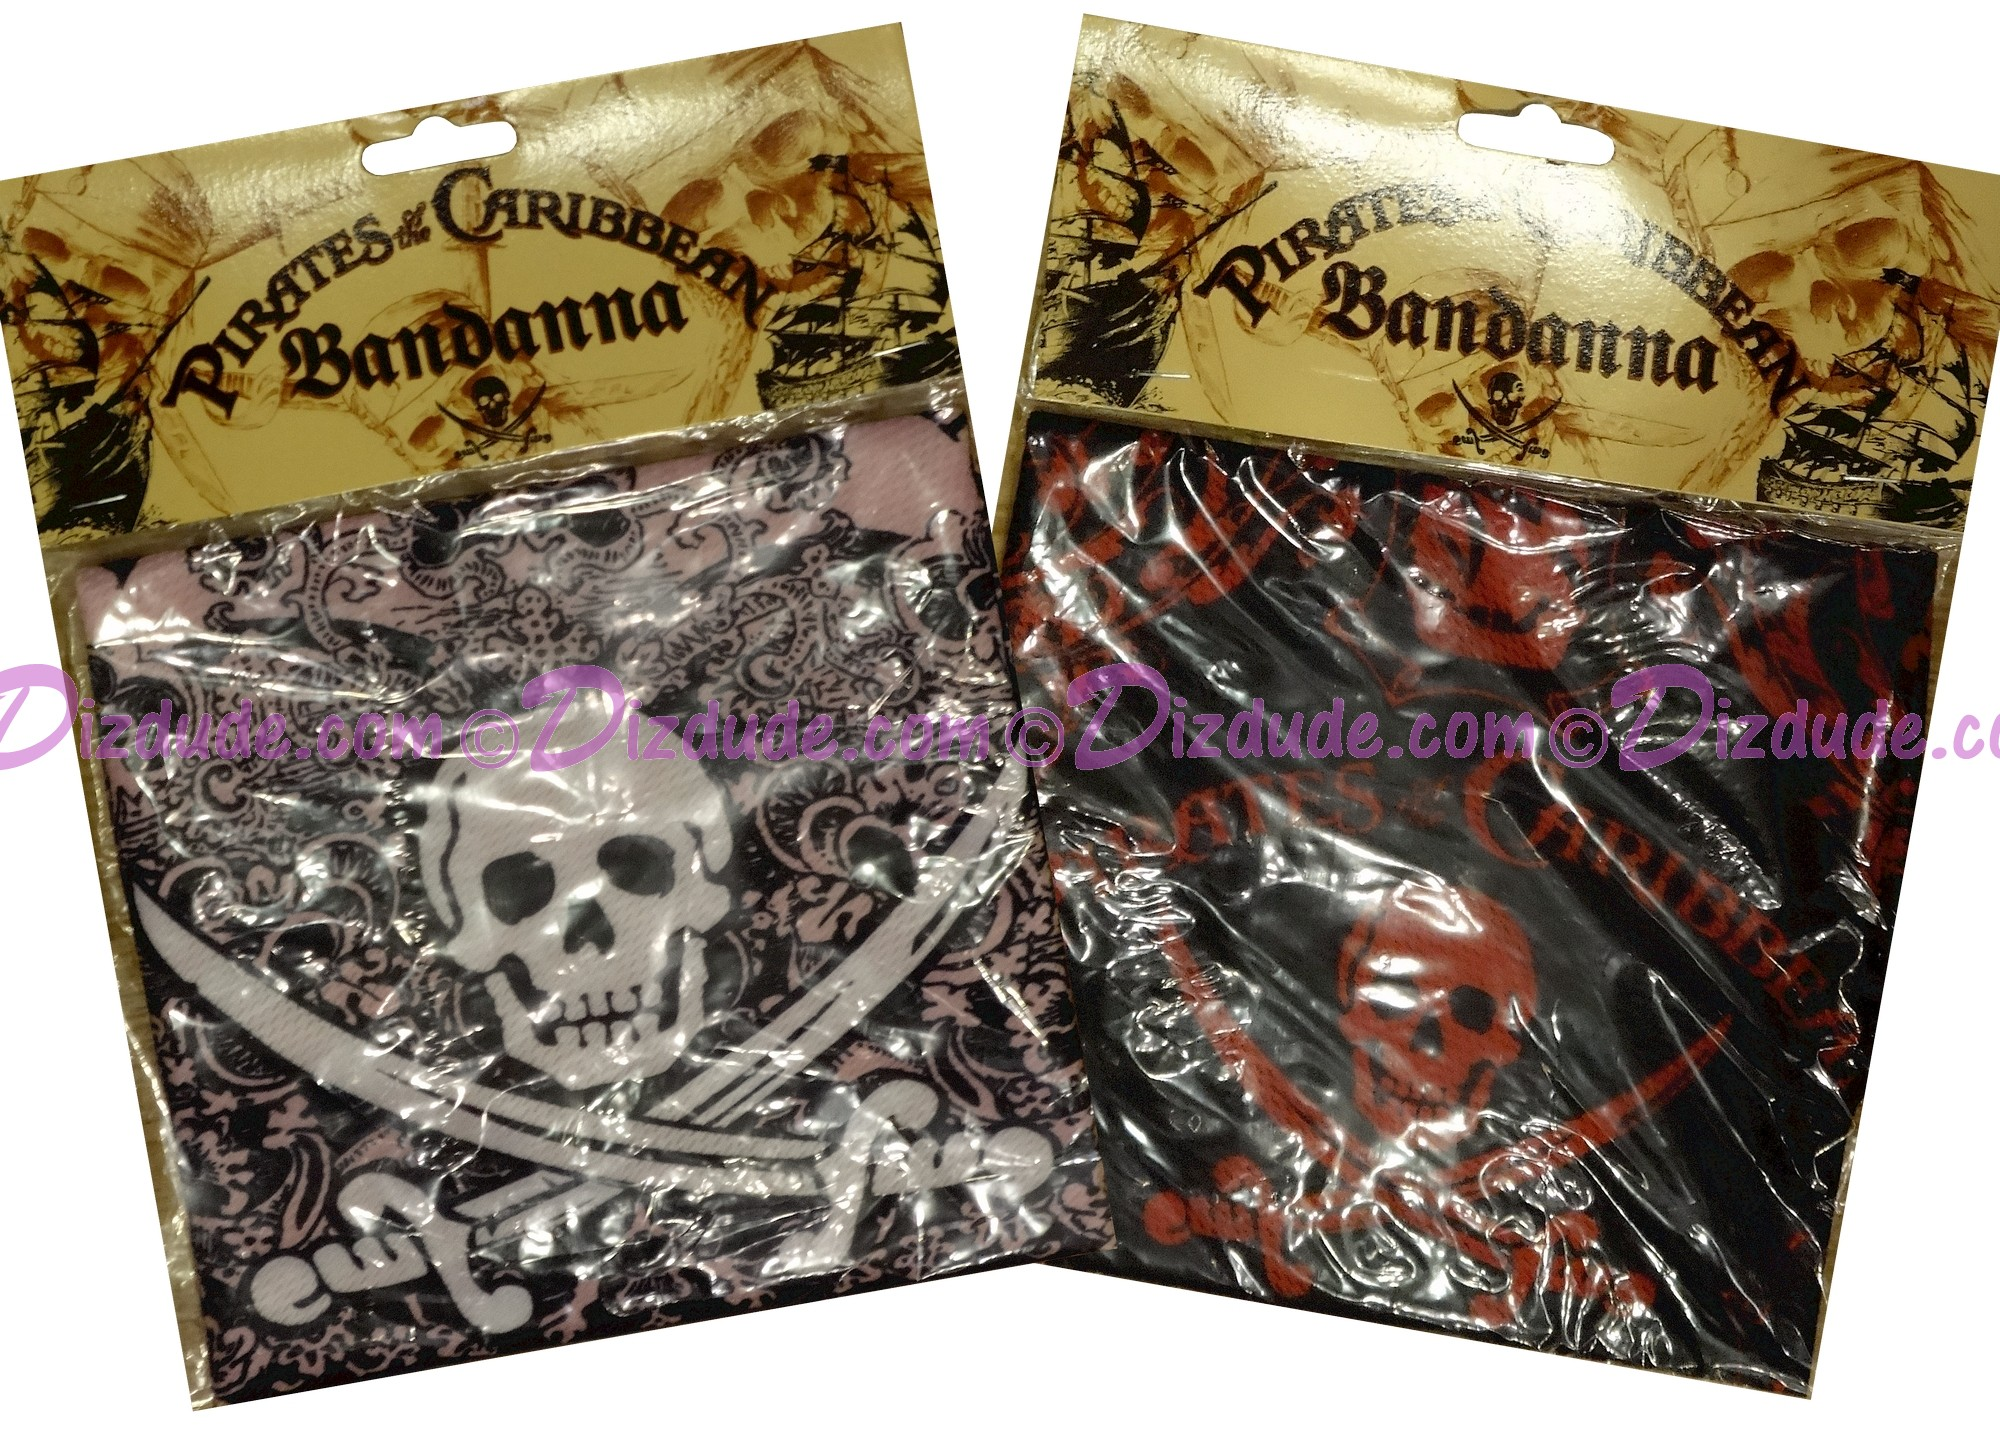 Disneys Pirates of the Caribbean Bandanas in Red or Pink